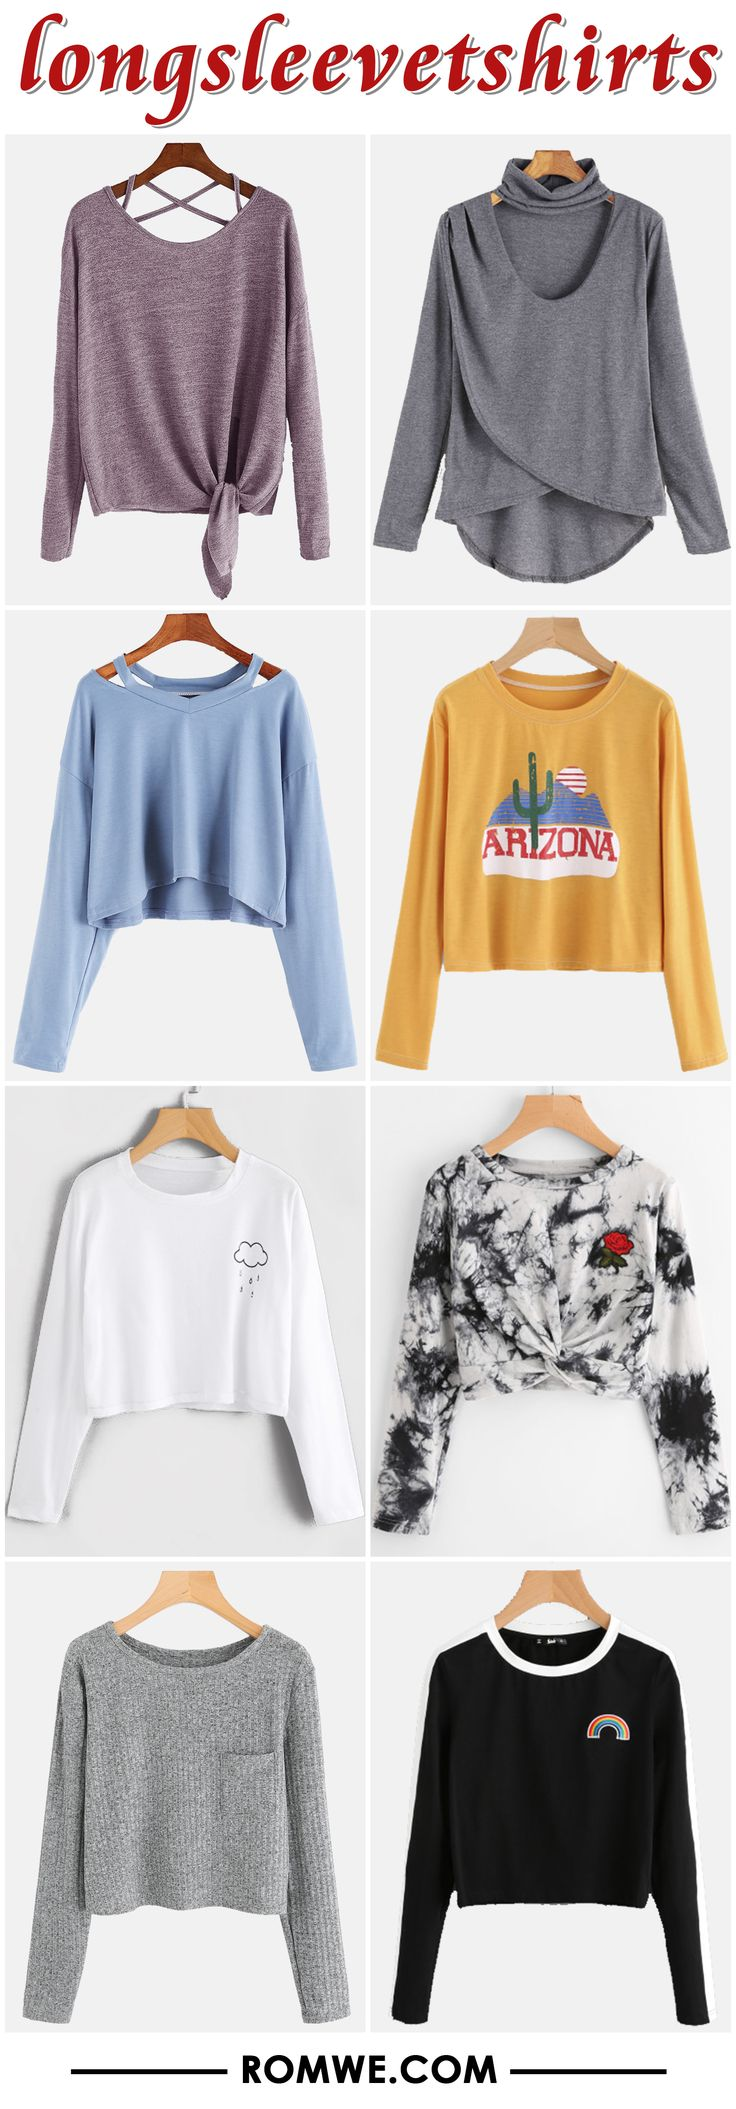 long sleeve t shirts from romwe.com